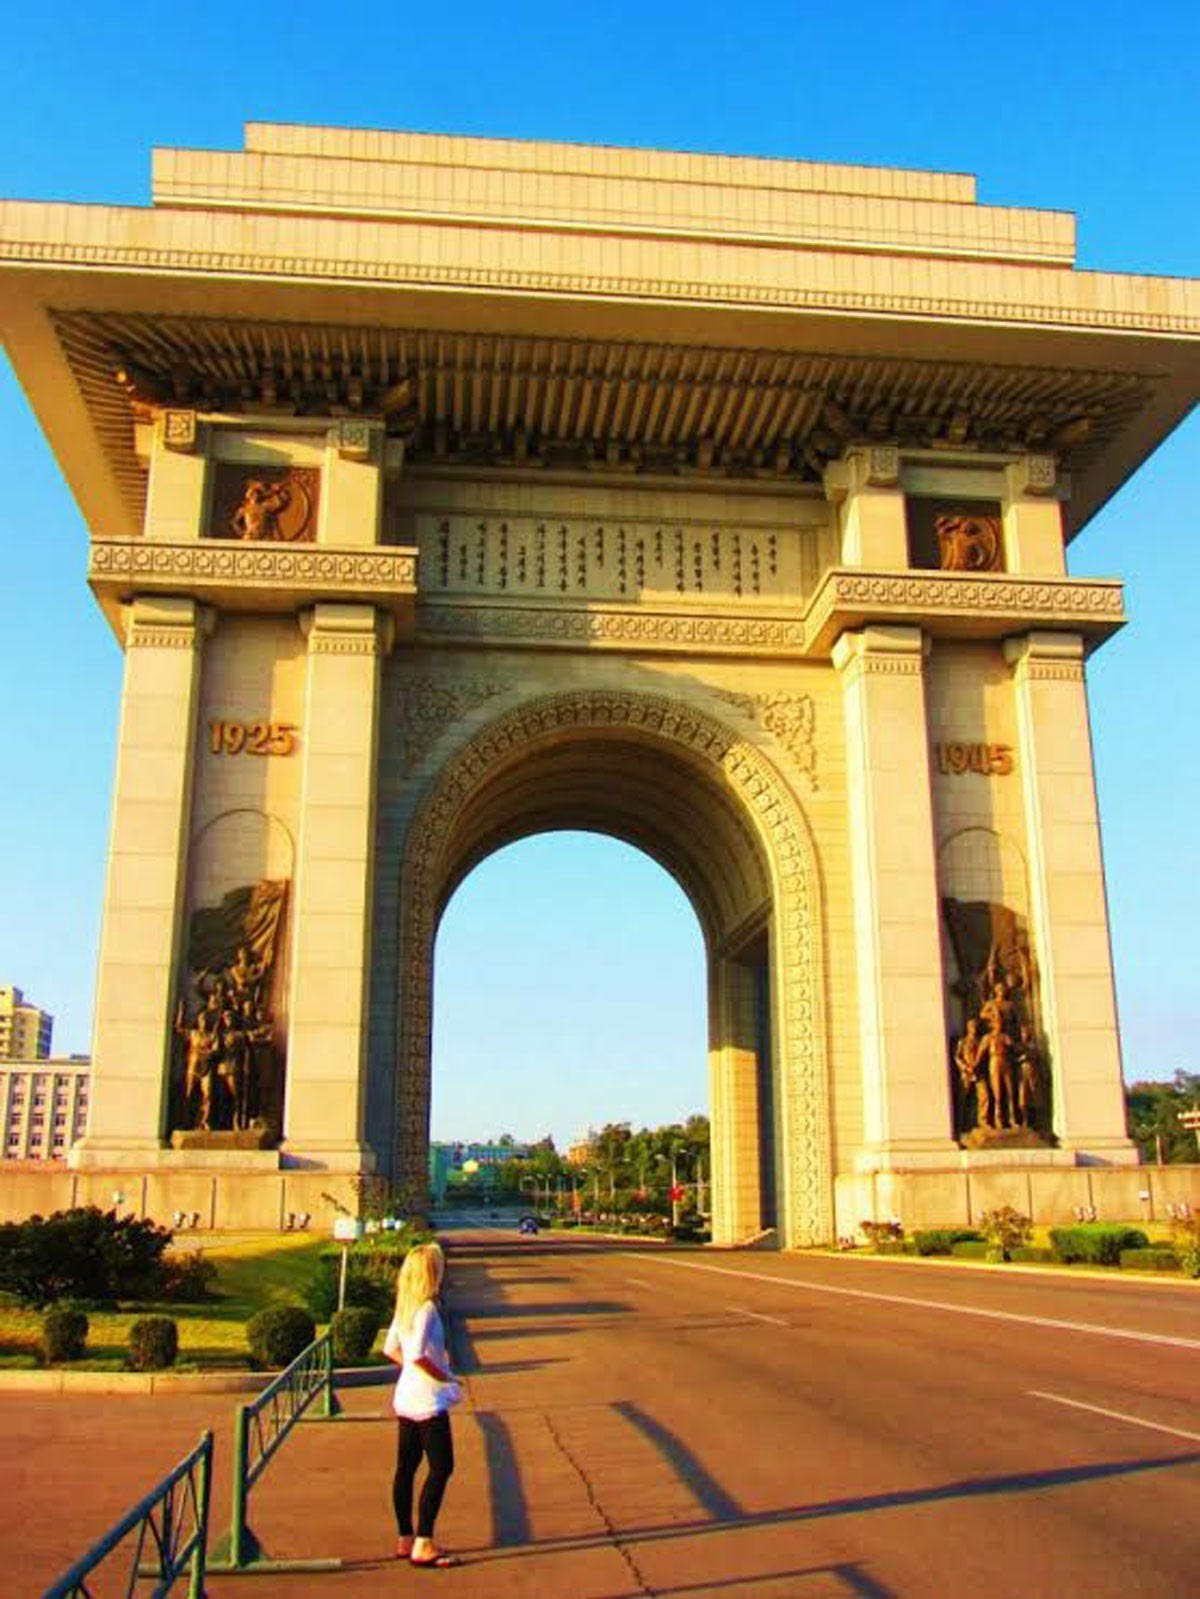 Pictured here is the Arch of Triumph in central Pyongyang. Inaugurated on the 70th birthday of Kim Il Sung in 1982, it consists of 25,000 blocks of granite that represent each day in his life up until that point.